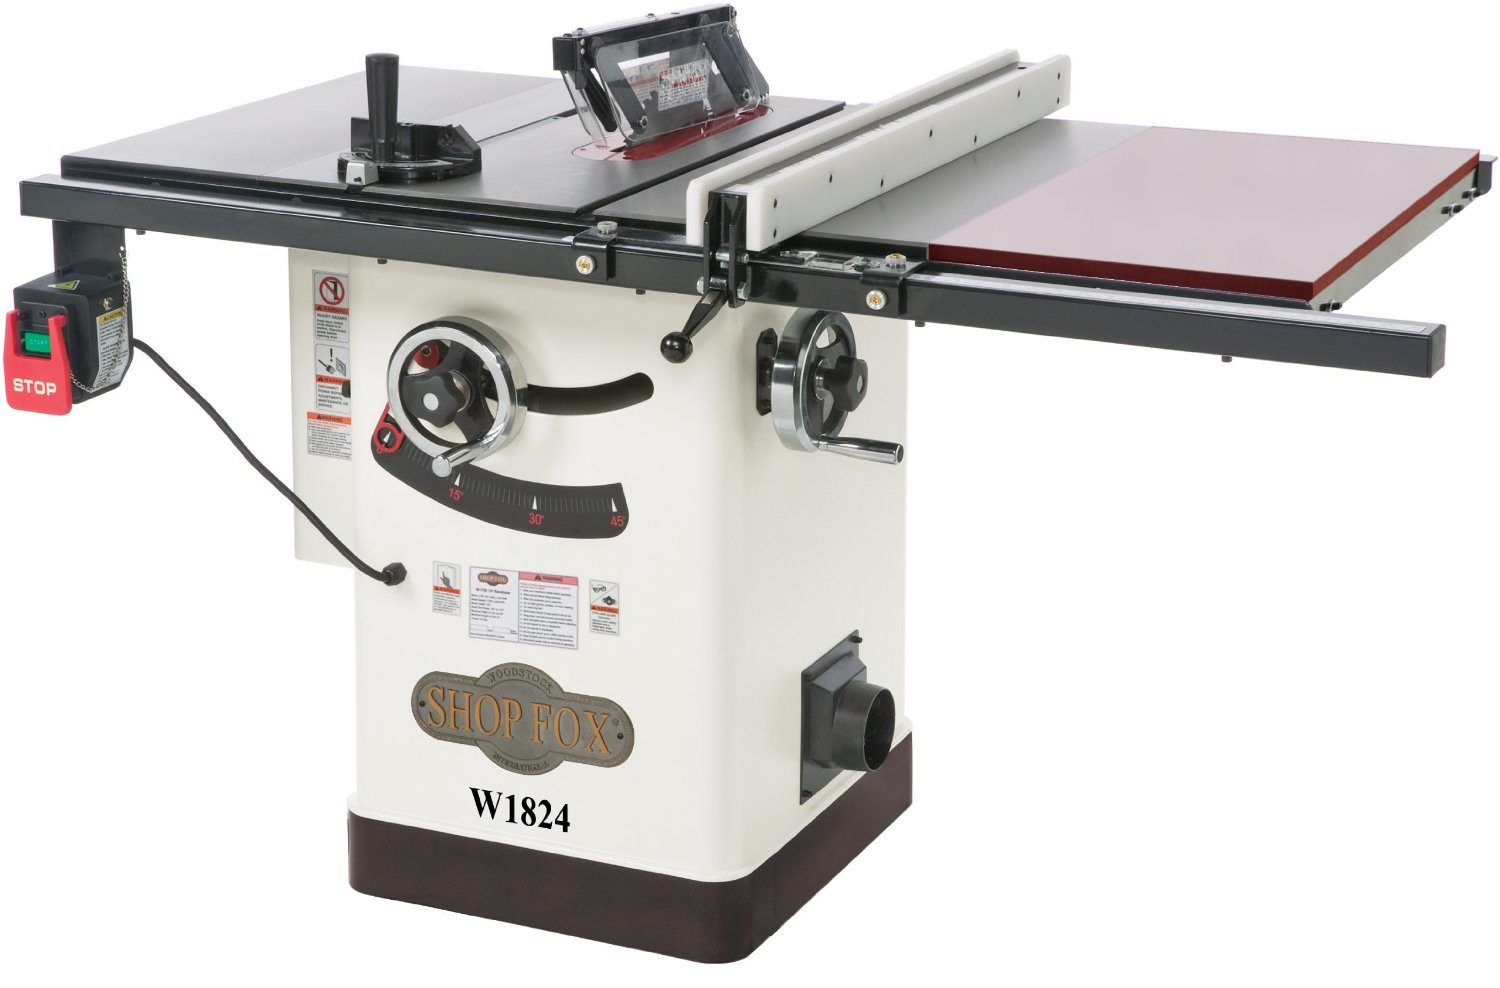 Hybrid Table Saw Reviews The Basic Woodworking